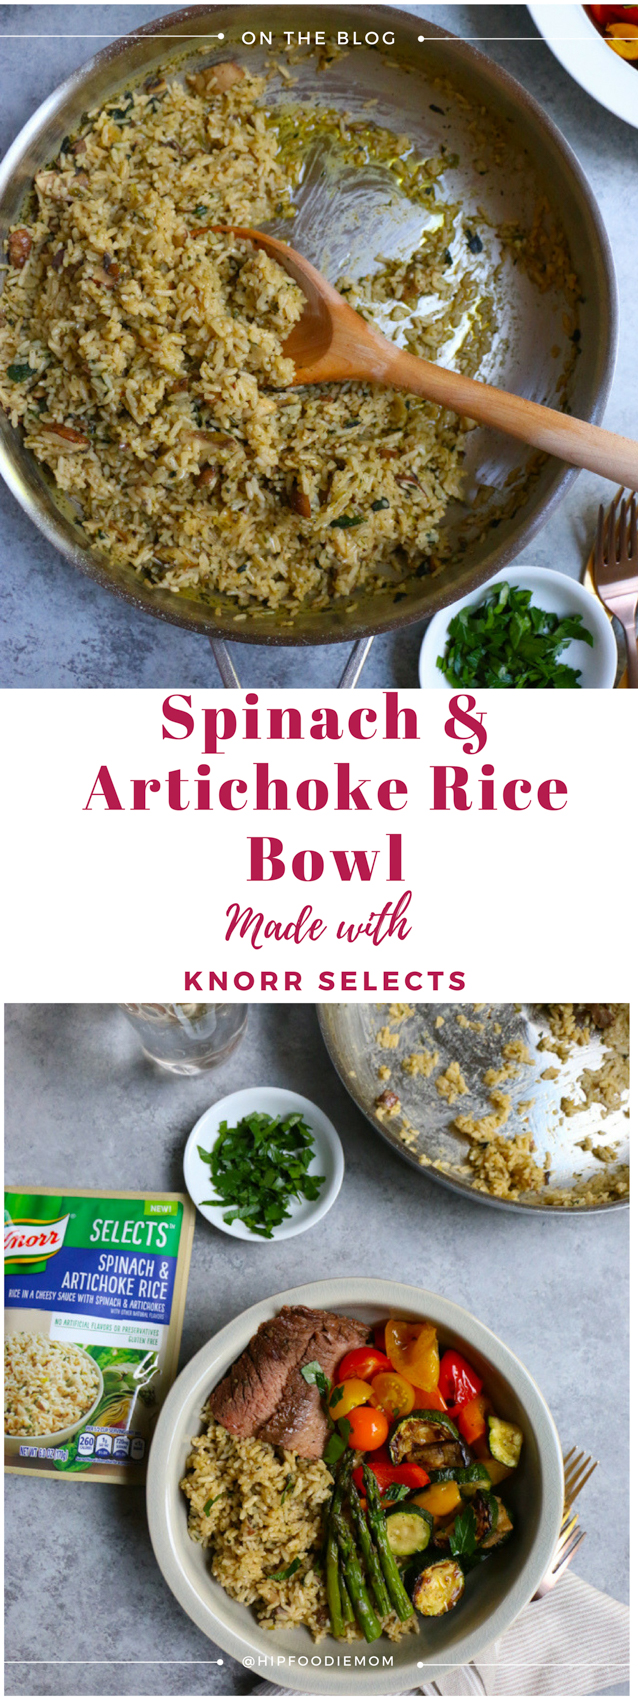 Delicious Summer Spinach Artichoke Rice Bowl with grilled veggies and meat! Now, this is what I call a perfect summer meal! So much goodness here! #ricebowl #spinachartichoke #summerdinner #grilling #easydinner #healthydinner #grilledvegetables #rice